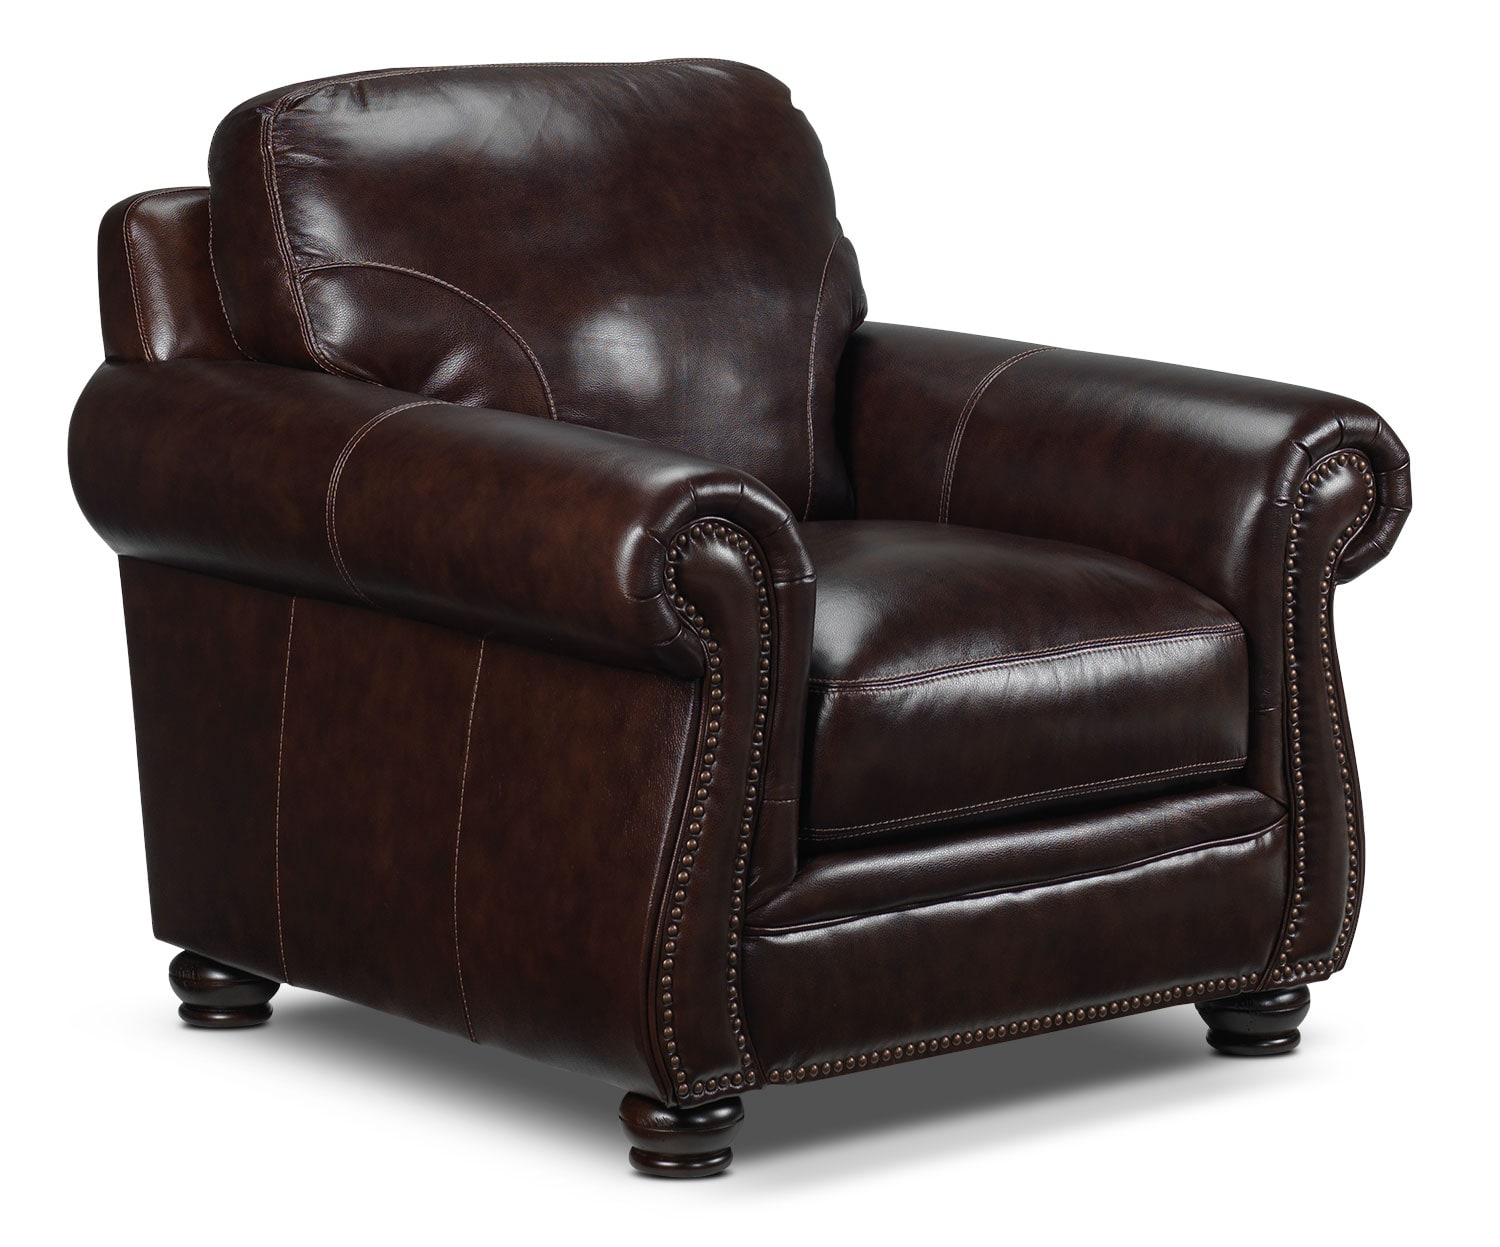 Living Room Furniture - Rafferty Chair